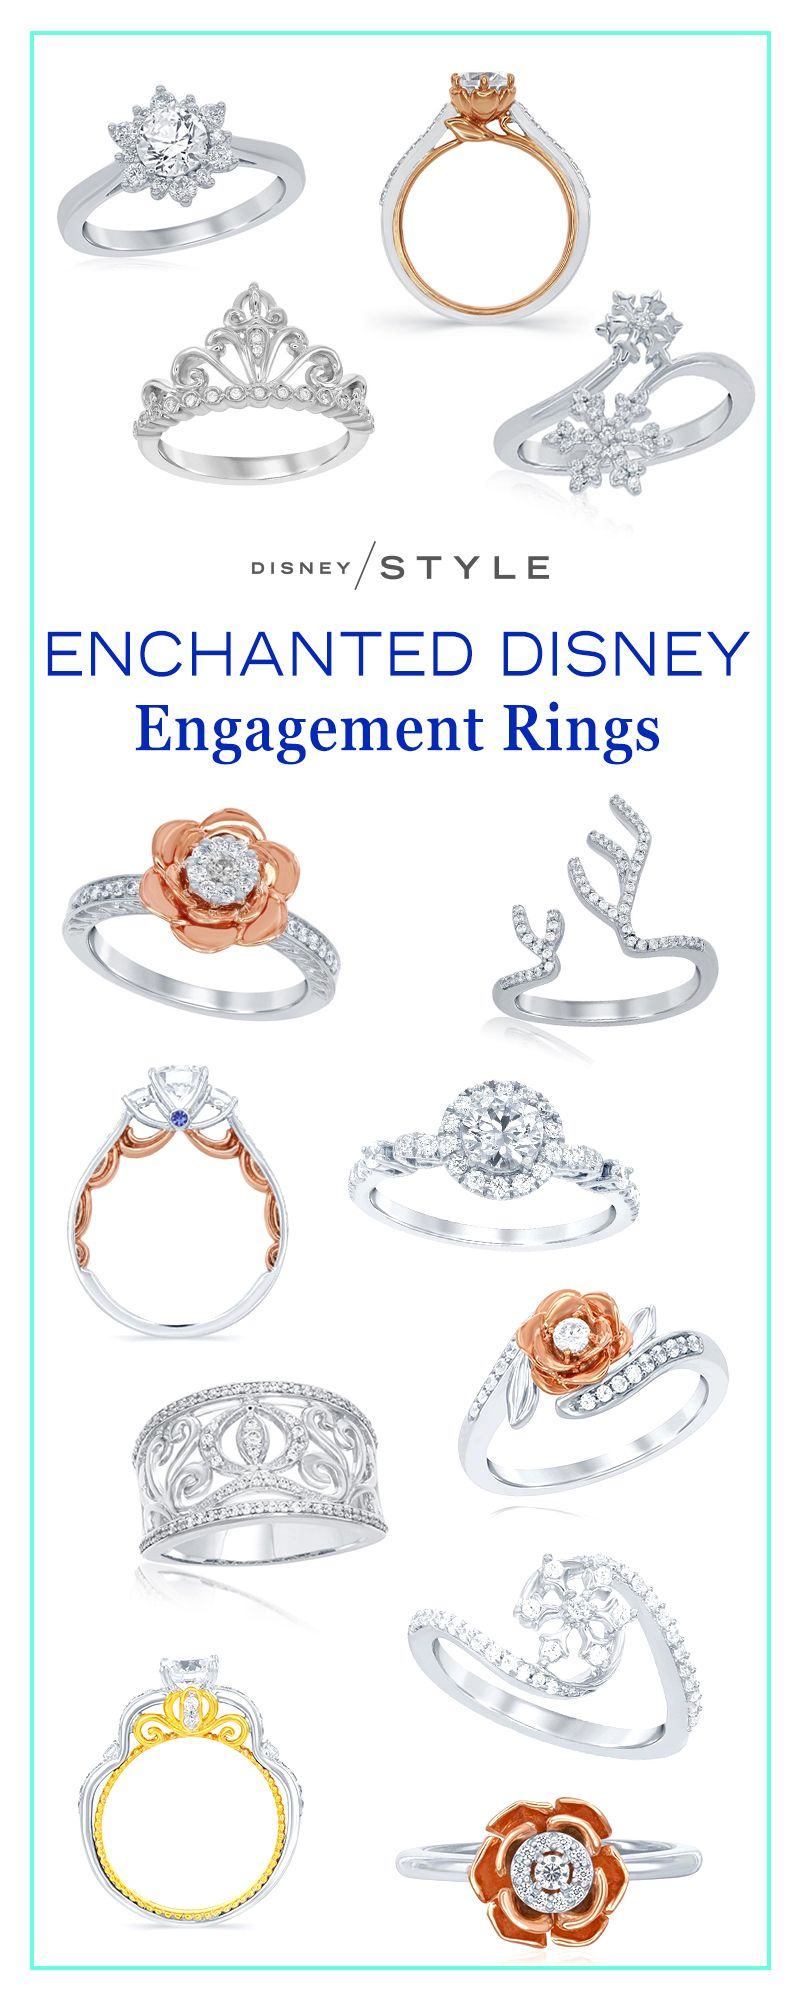 enchanted diamond photo disney gallery cinderella carriage ring rings zales wedding image love